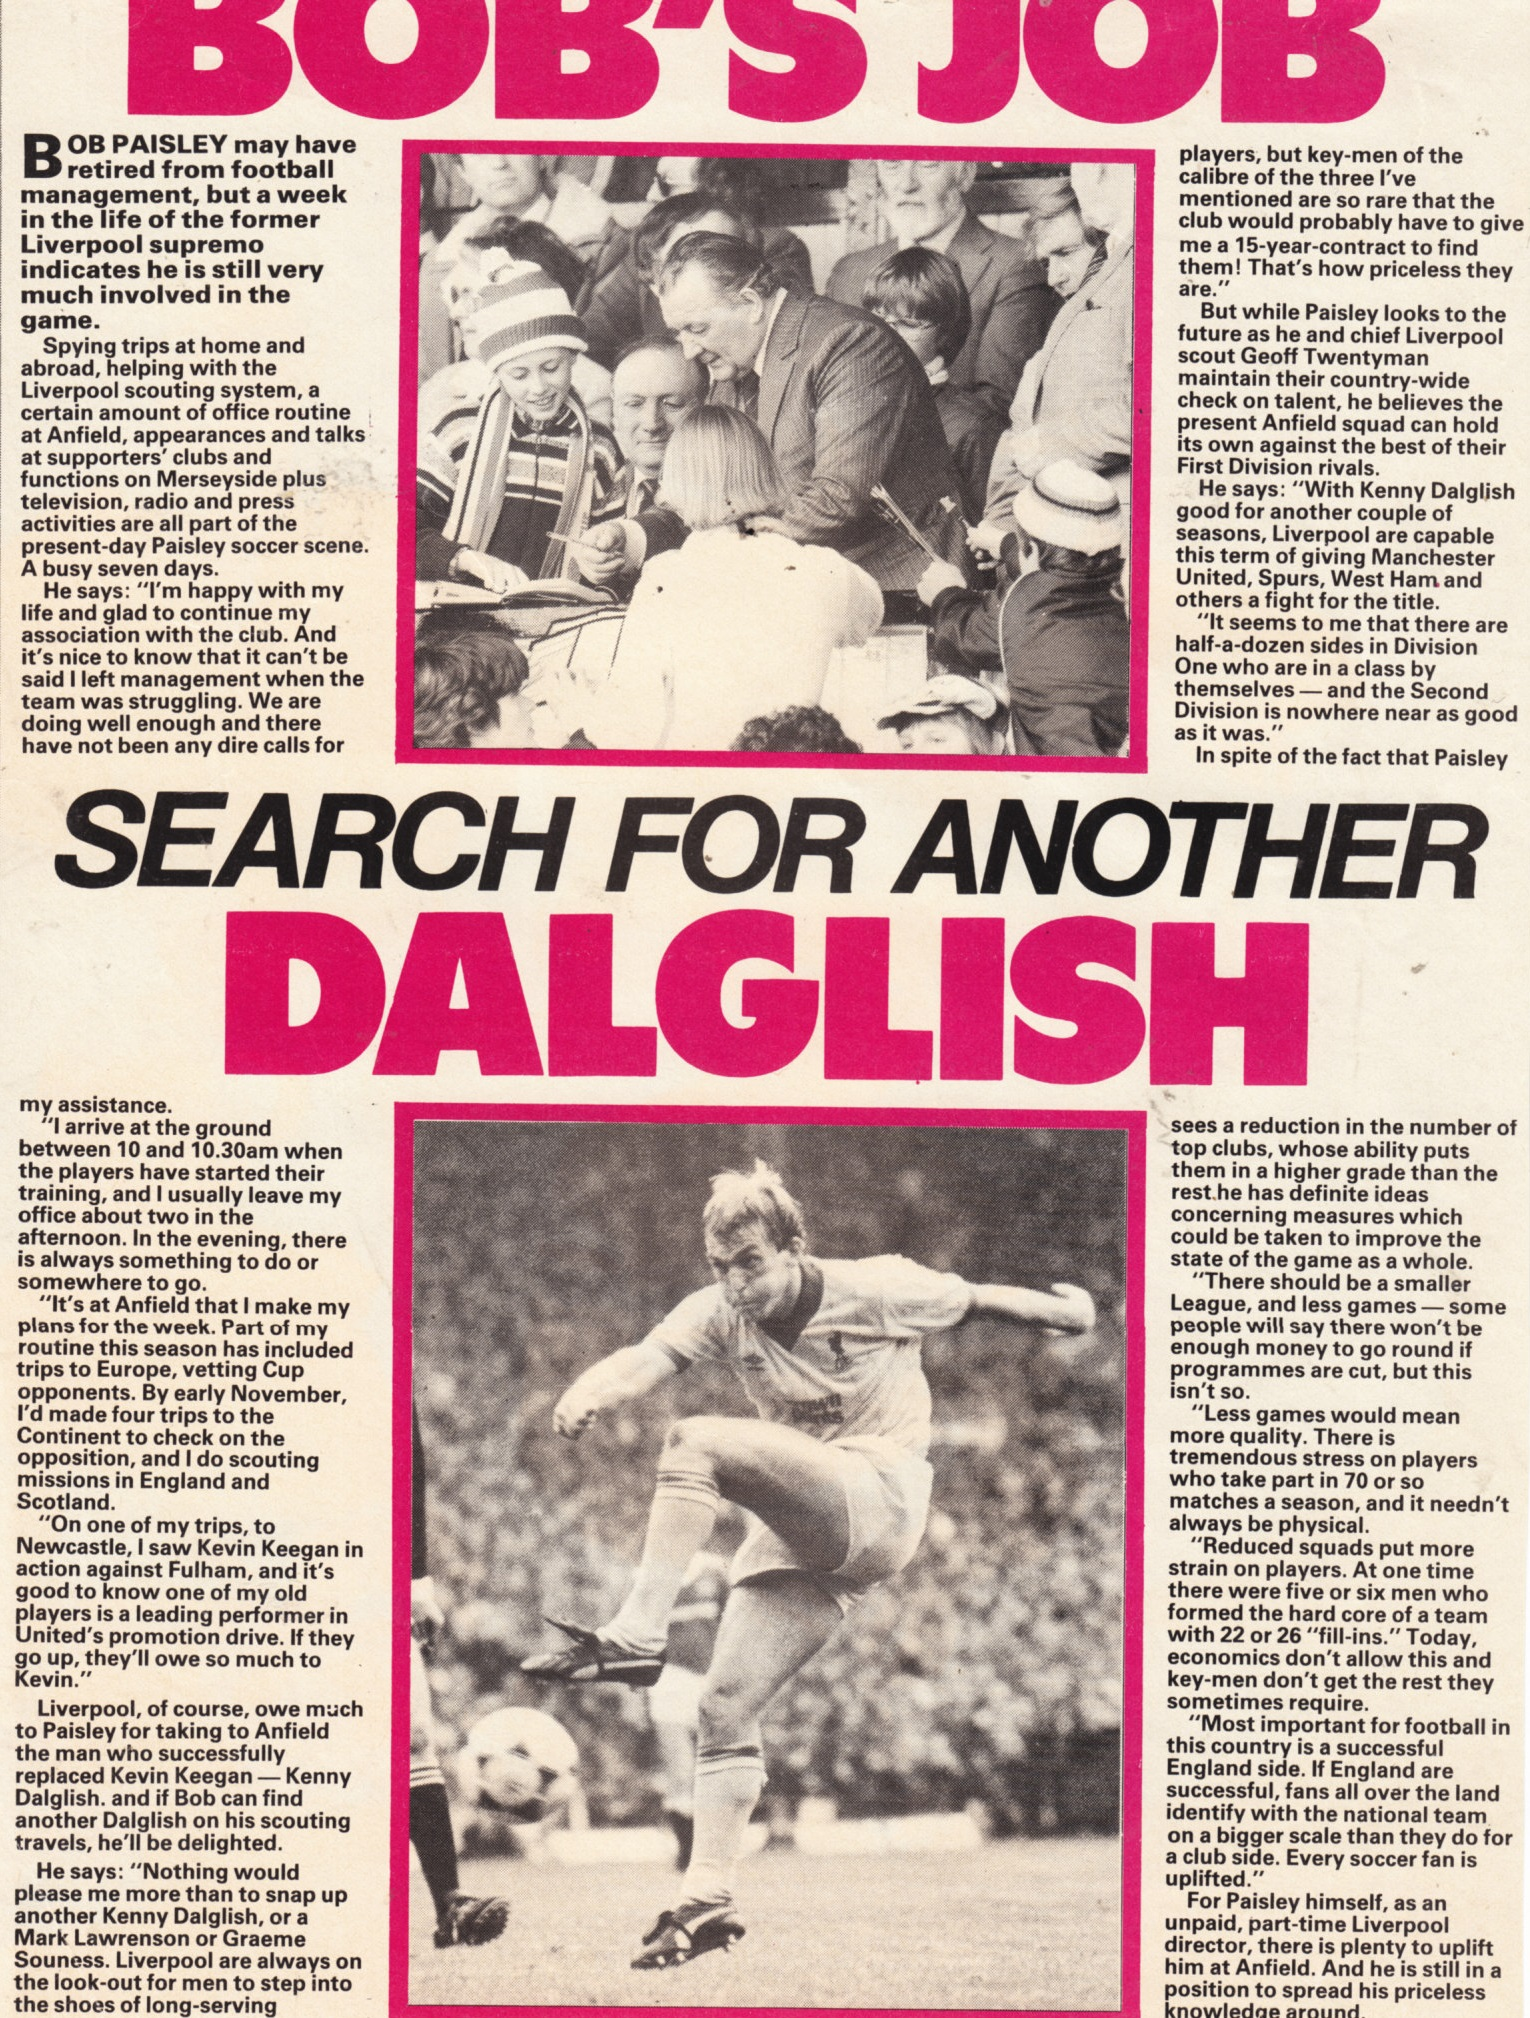 Bob's job to search for another Dalglish - 1983